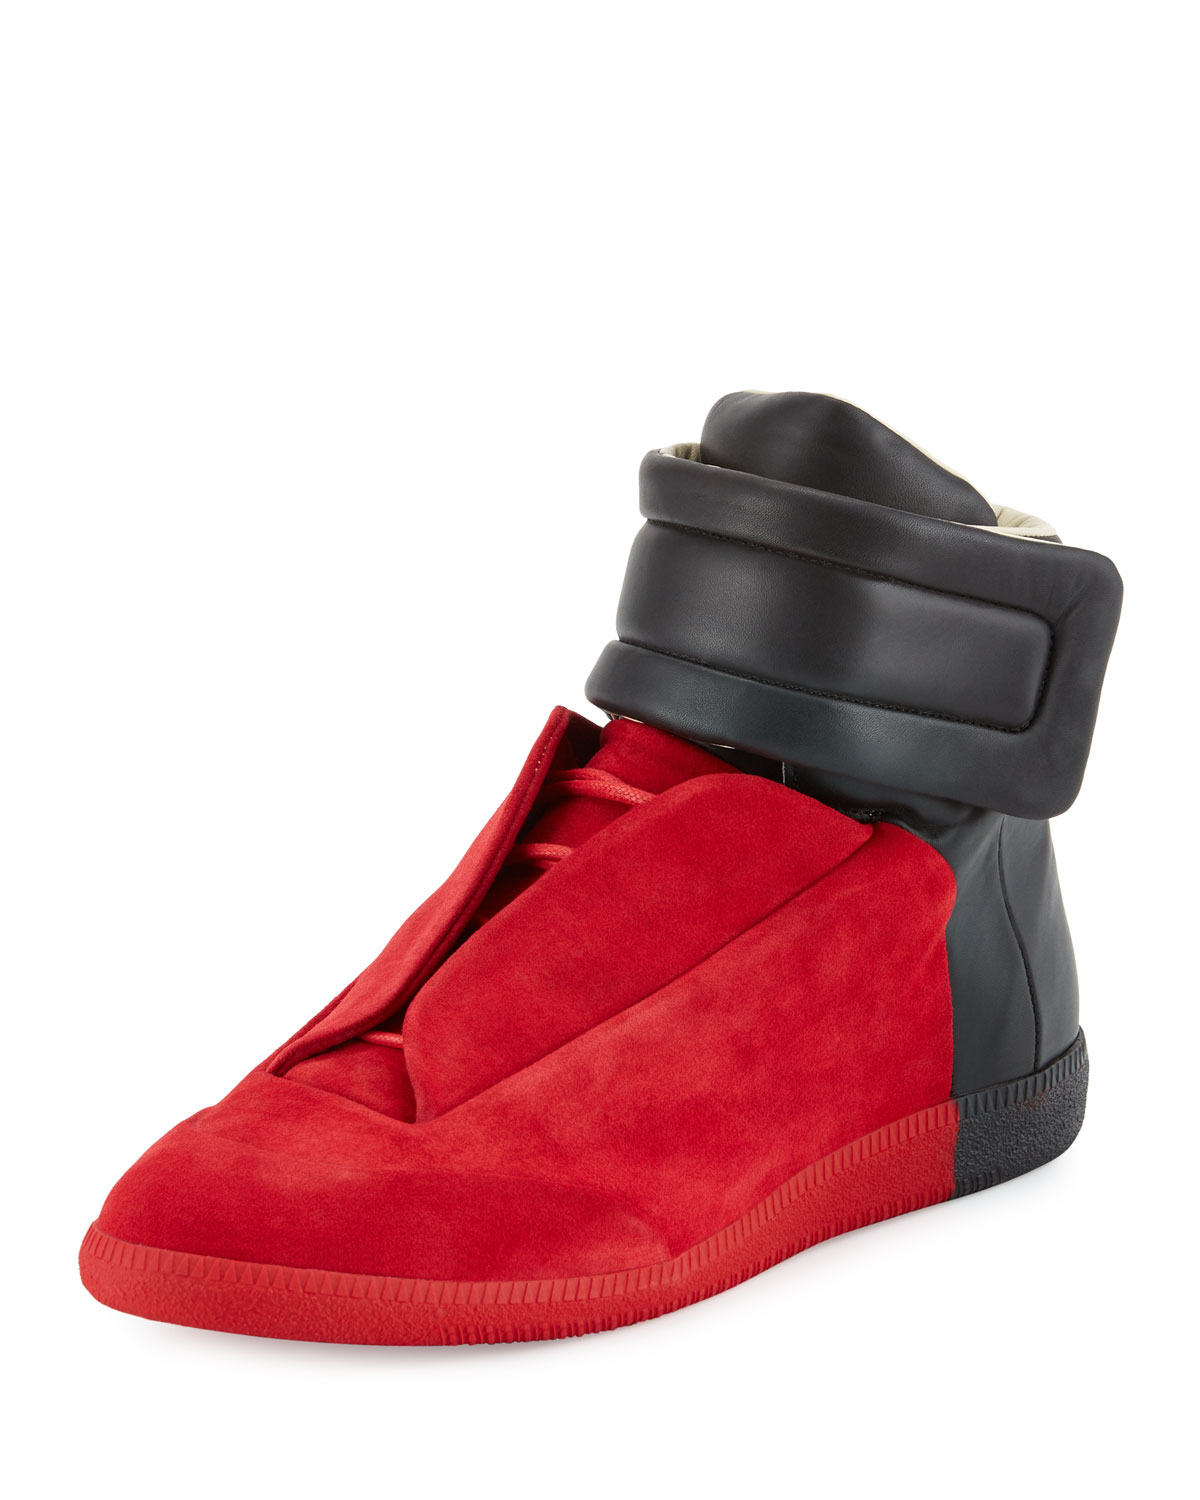 Maison Margiela Future Red Black Colorblock High-Top Sneakers : MALIBU MART